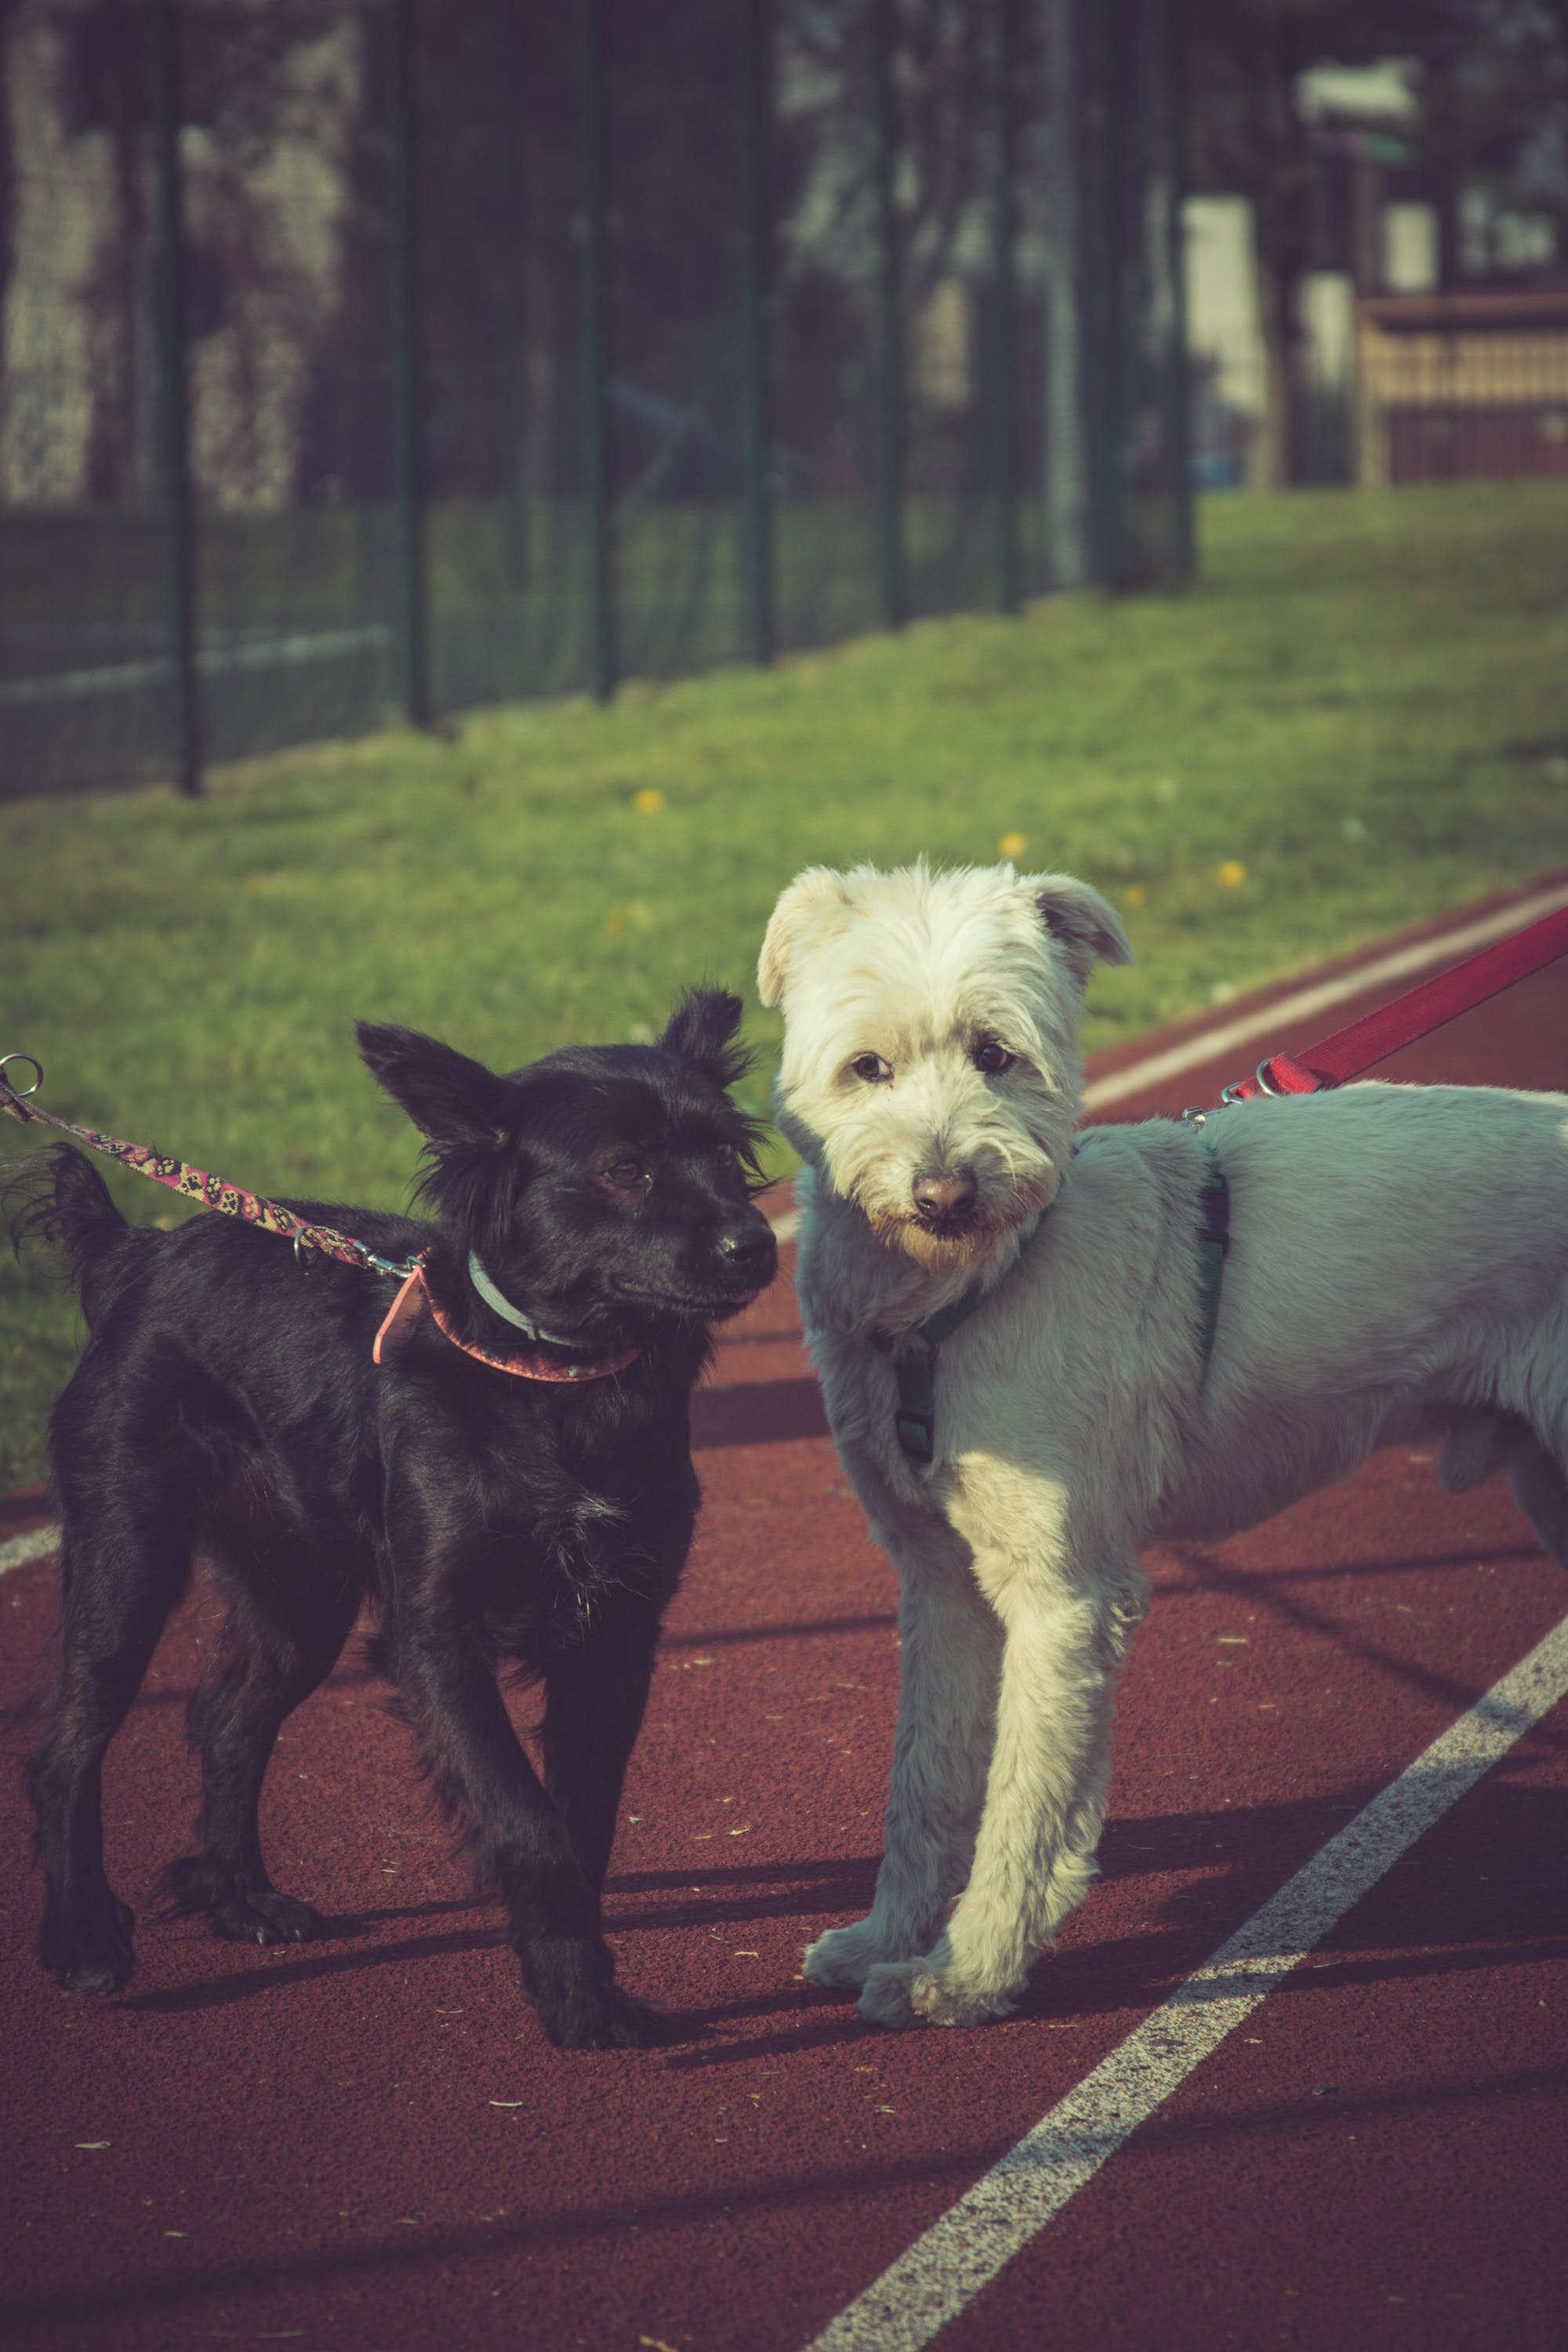 Two Black and White Dogs in Track